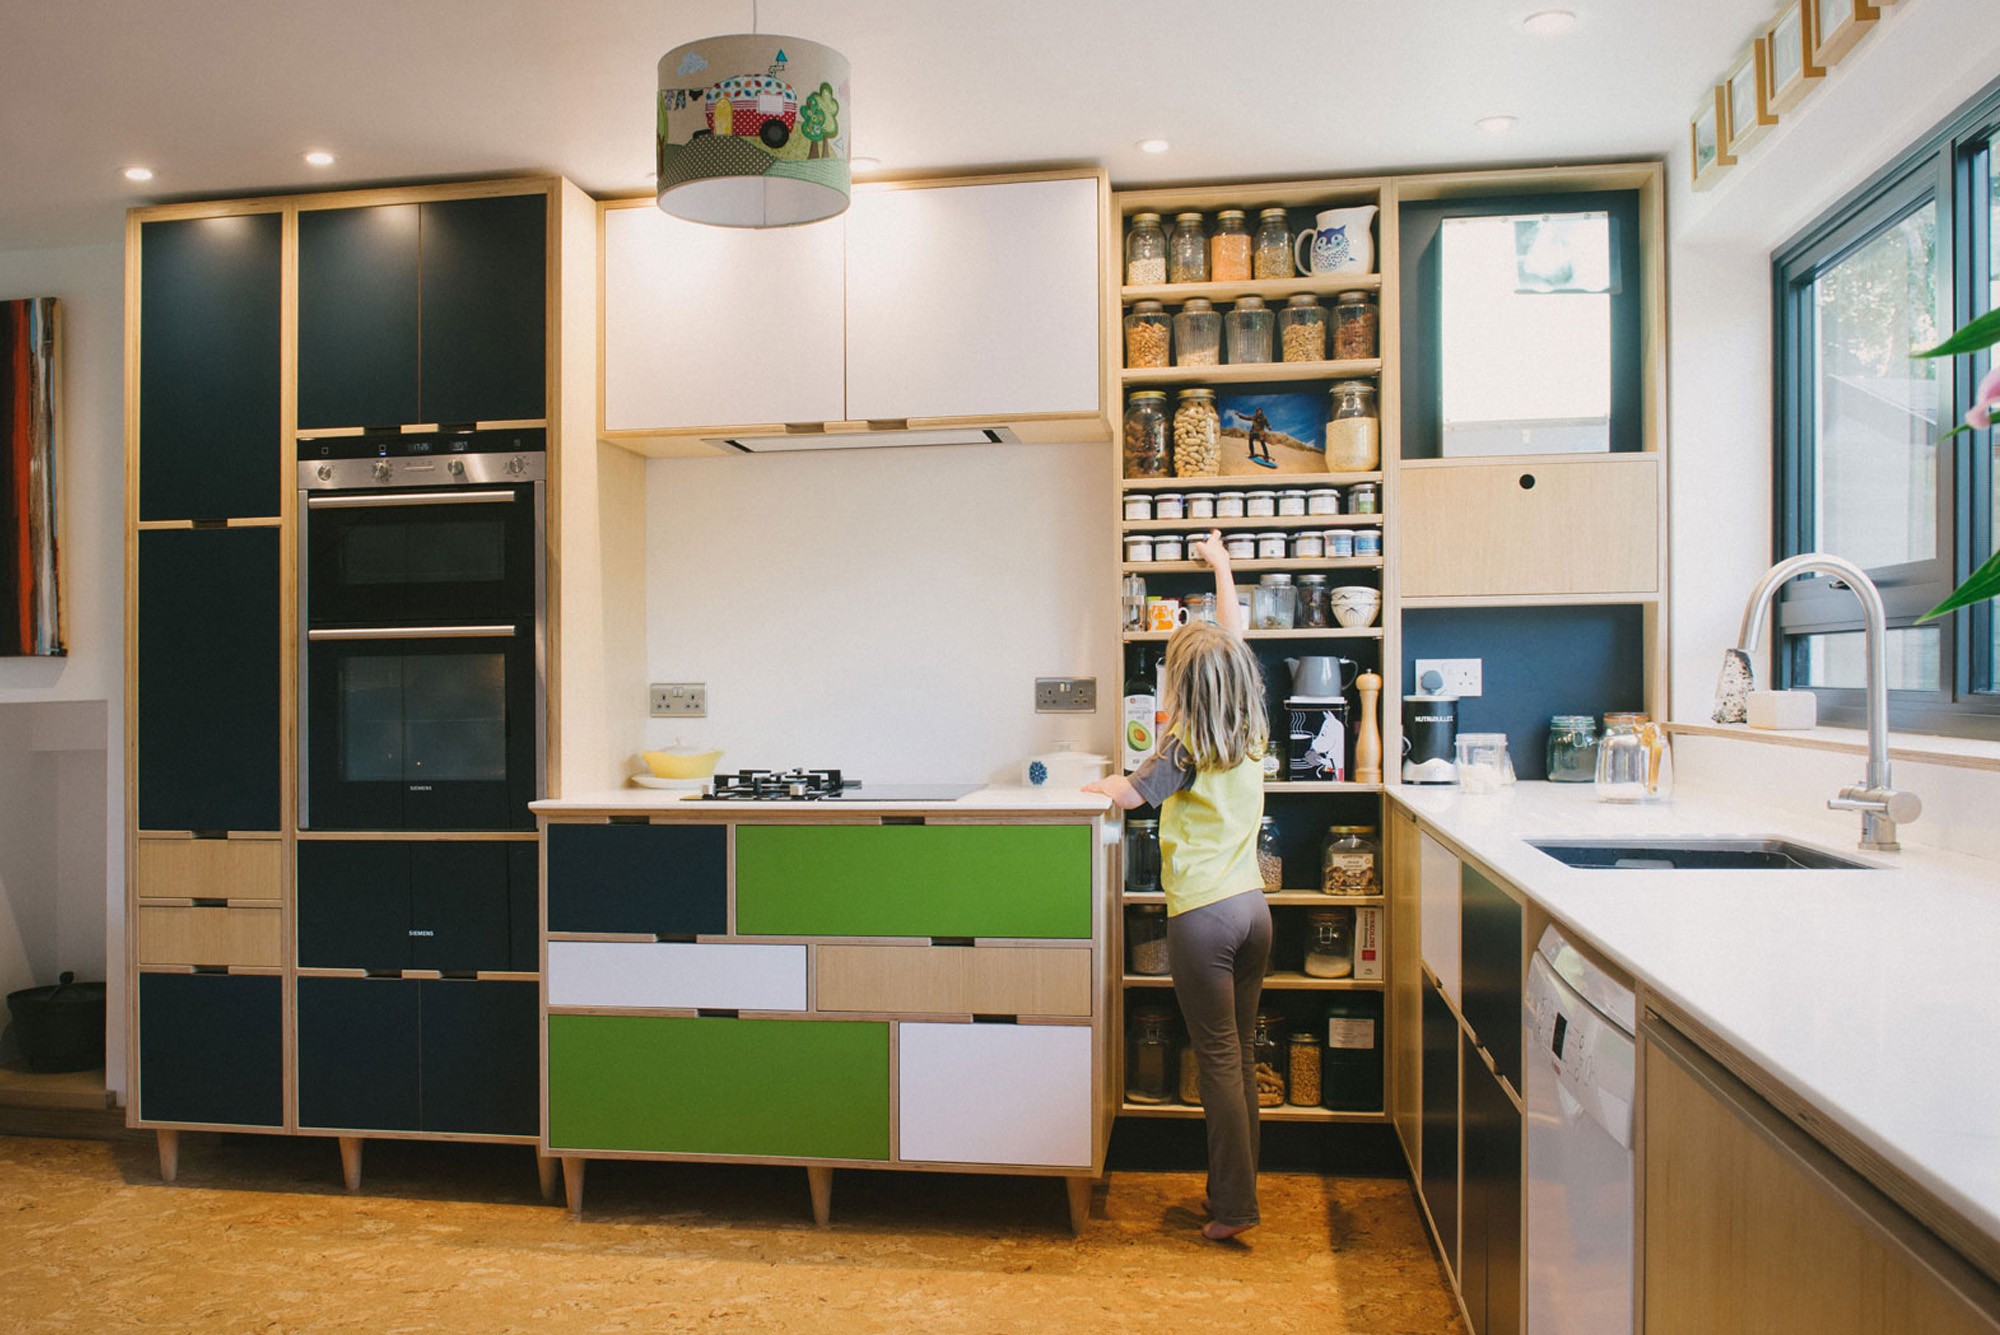 Little girl reaching for spices in green plywood kitchen